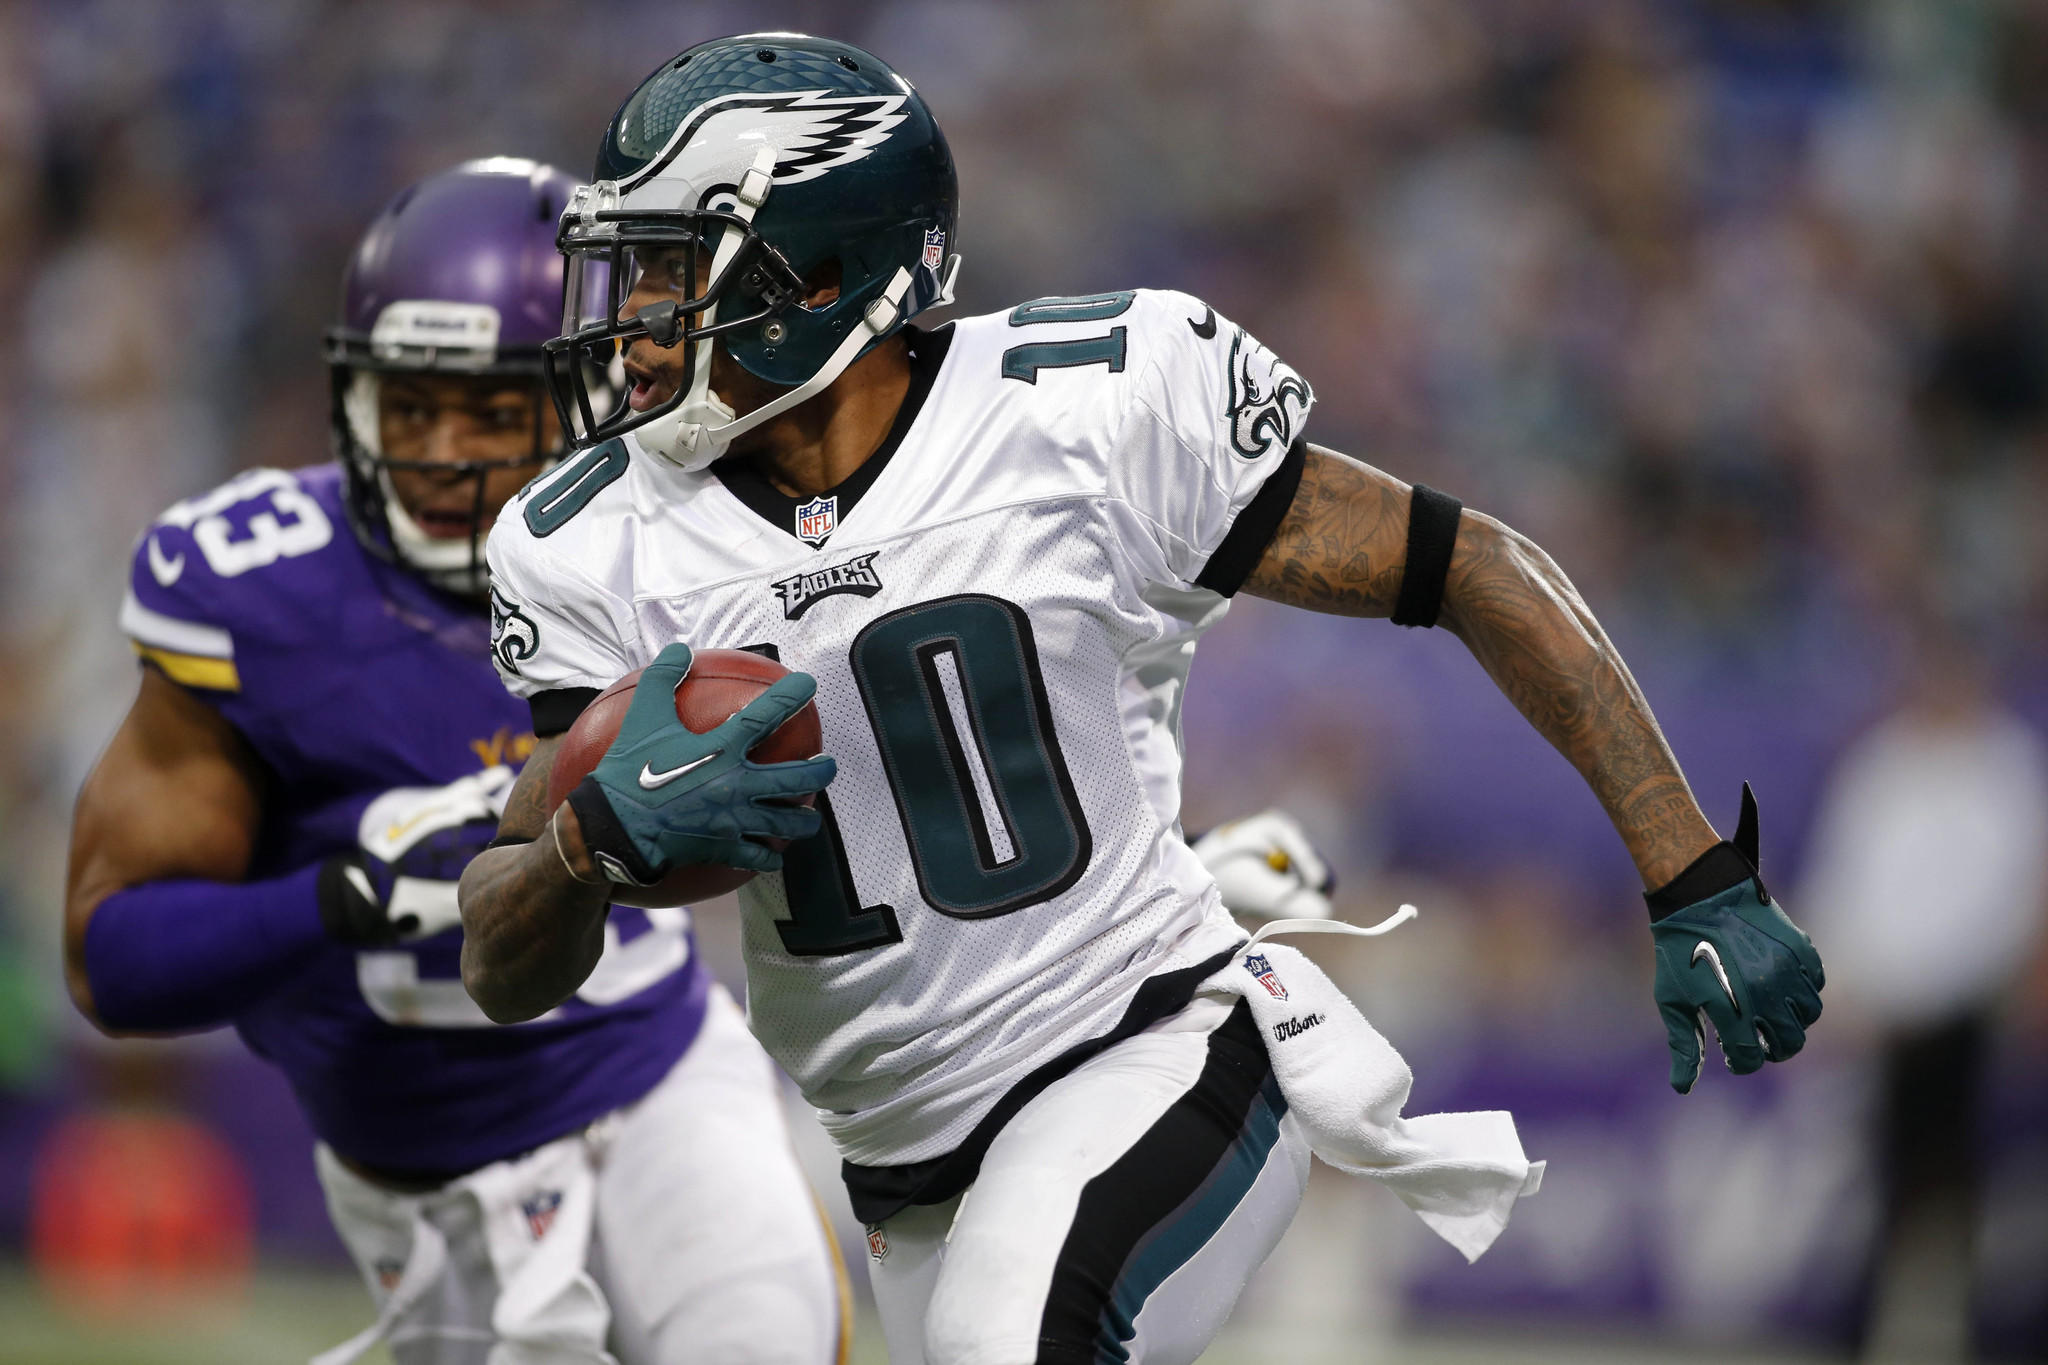 Philadelphia Eagles wide receiver DeSean Jackson.